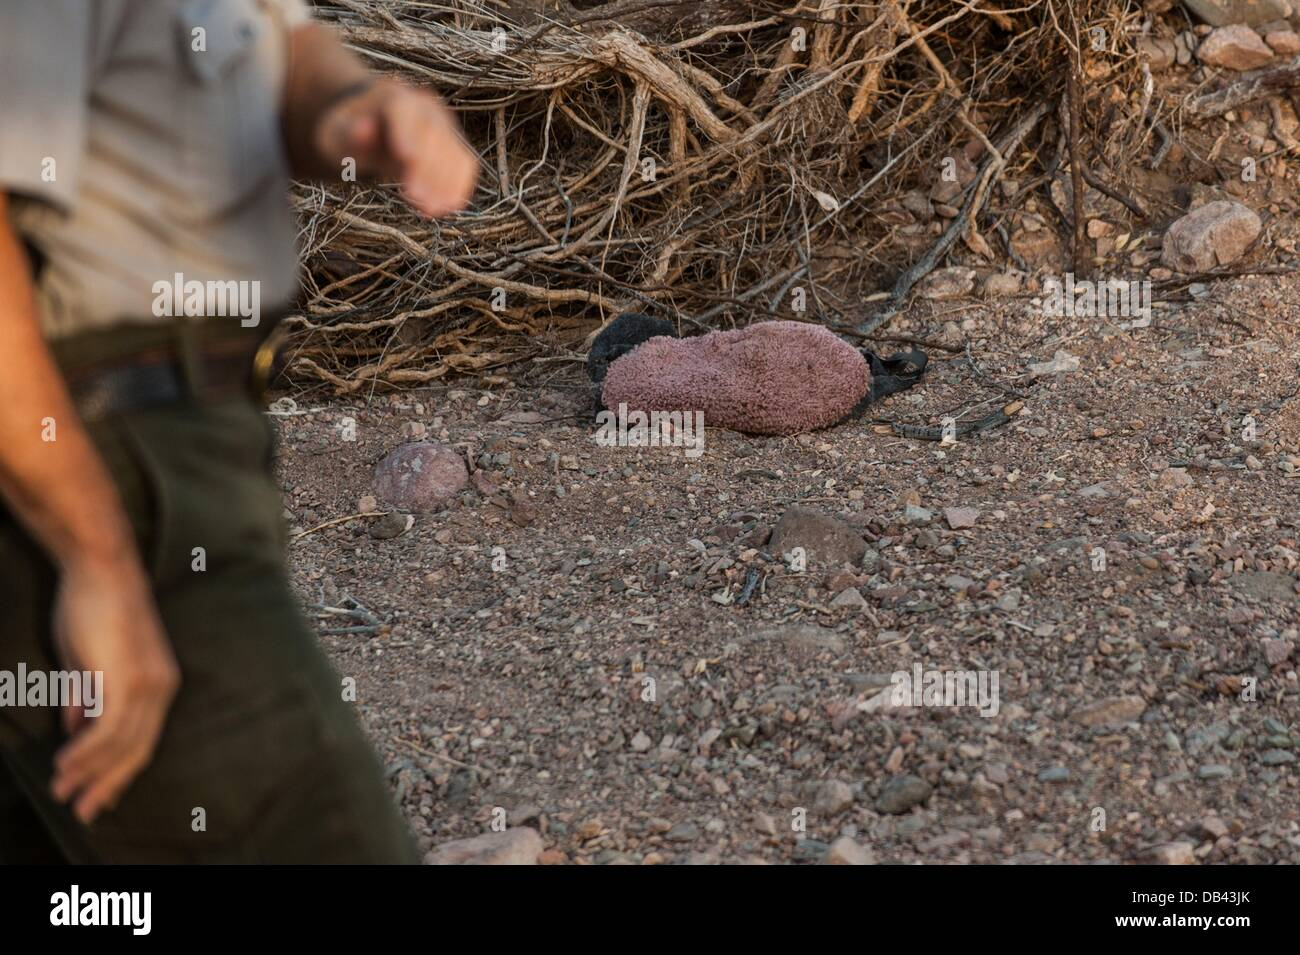 June 13, 2013 - Lukeville, Arizona, United States - An abandoned carpet bootie sits on the desert floor in a closed Stock Photo